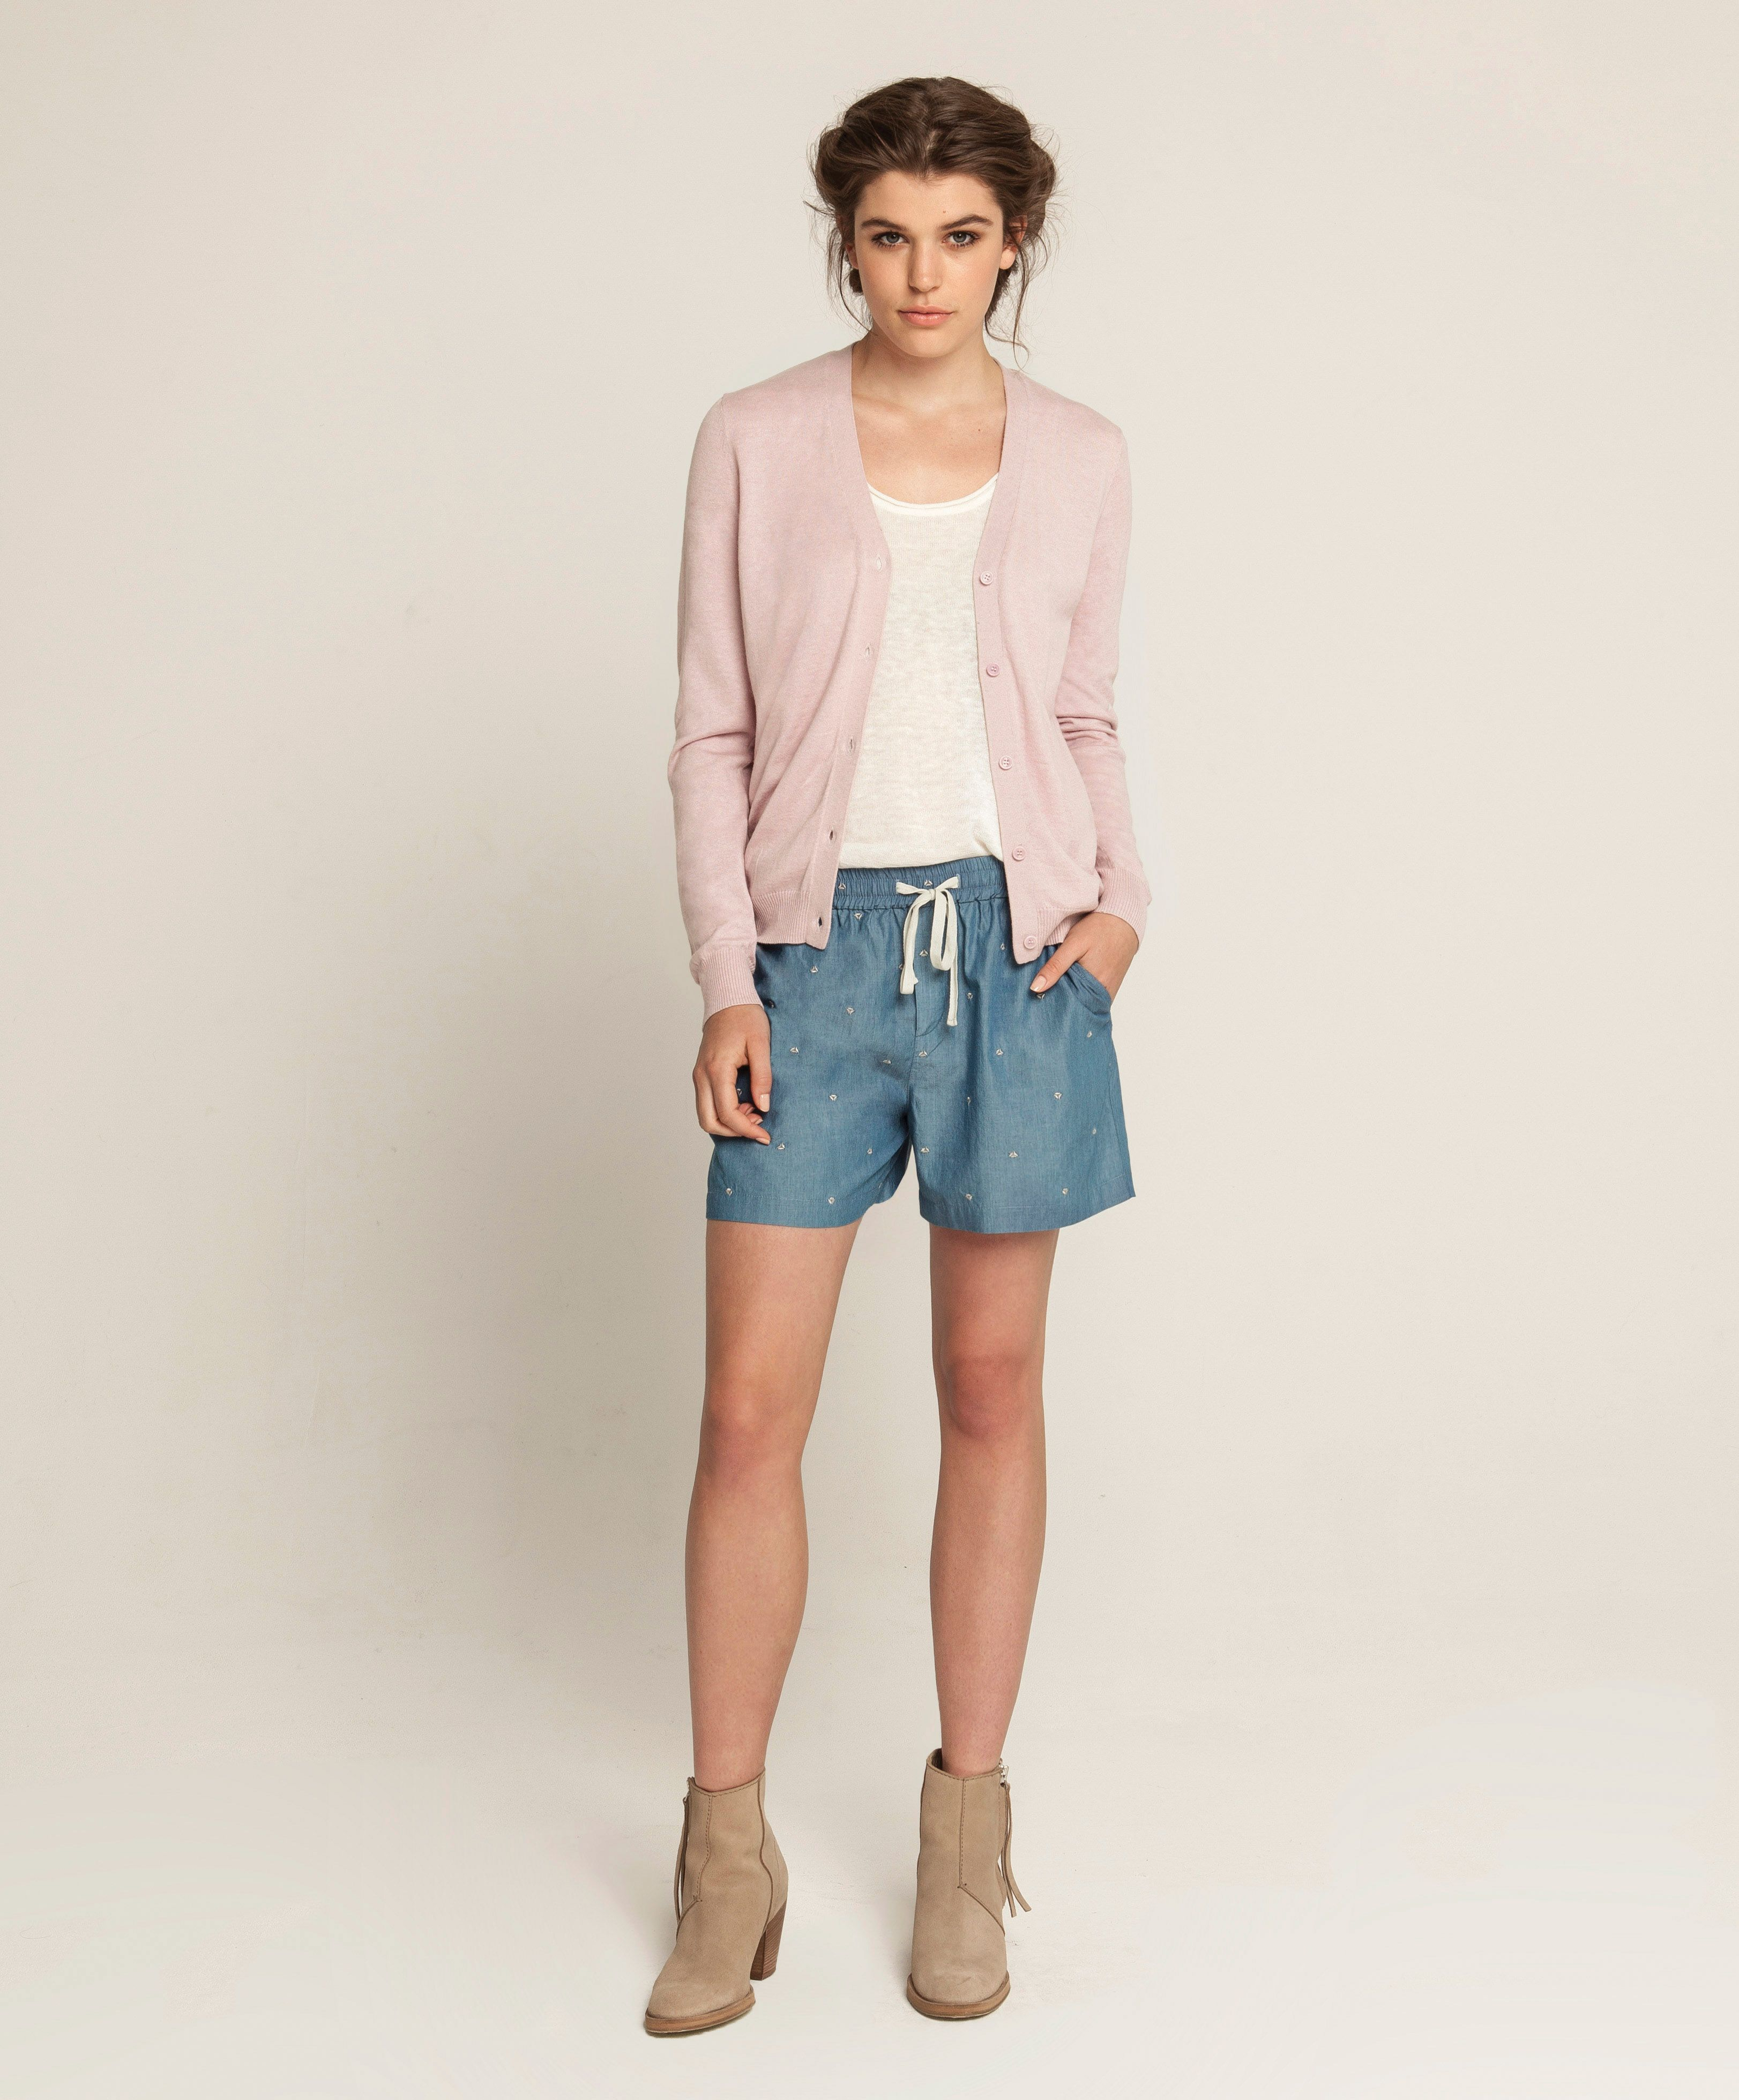 Fully Fashioned Linen Tank - Off White, Cashmere Bamboo Classic Cardigan - Rose Water, Embroidered Lounge Shorts - Sky Blue Indigo